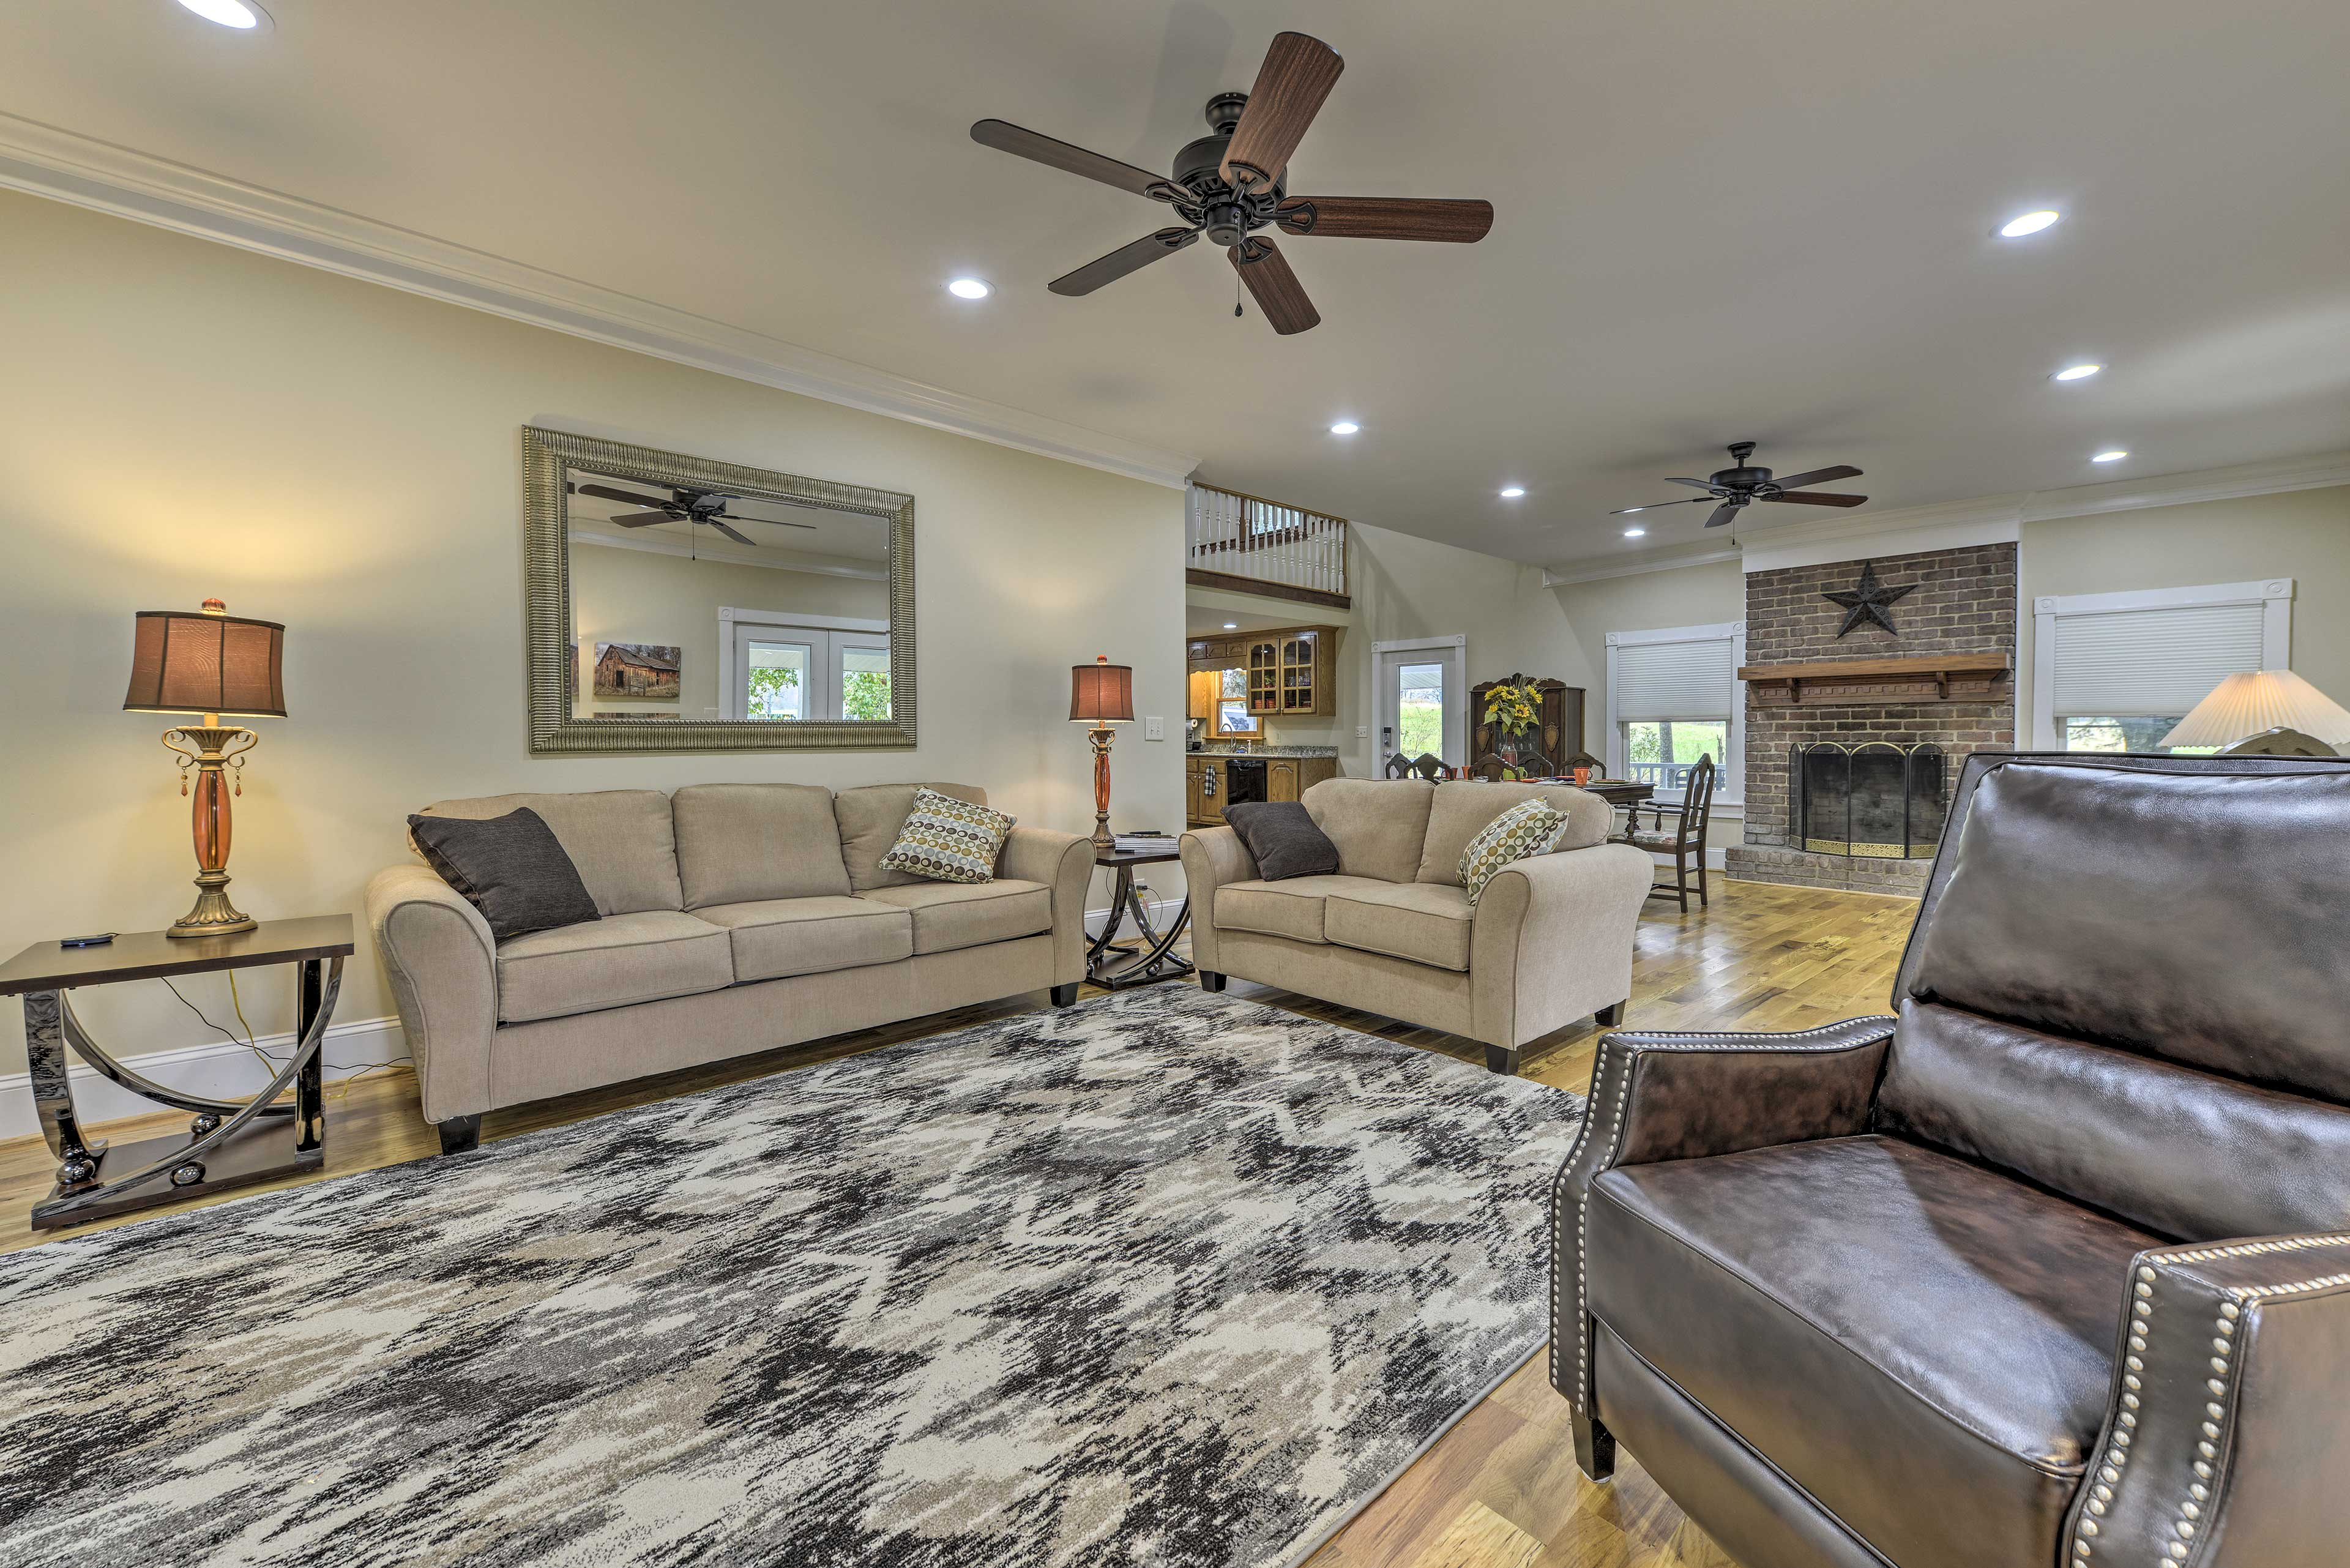 The interior boasts 2,944 square feet of tasteful living space.